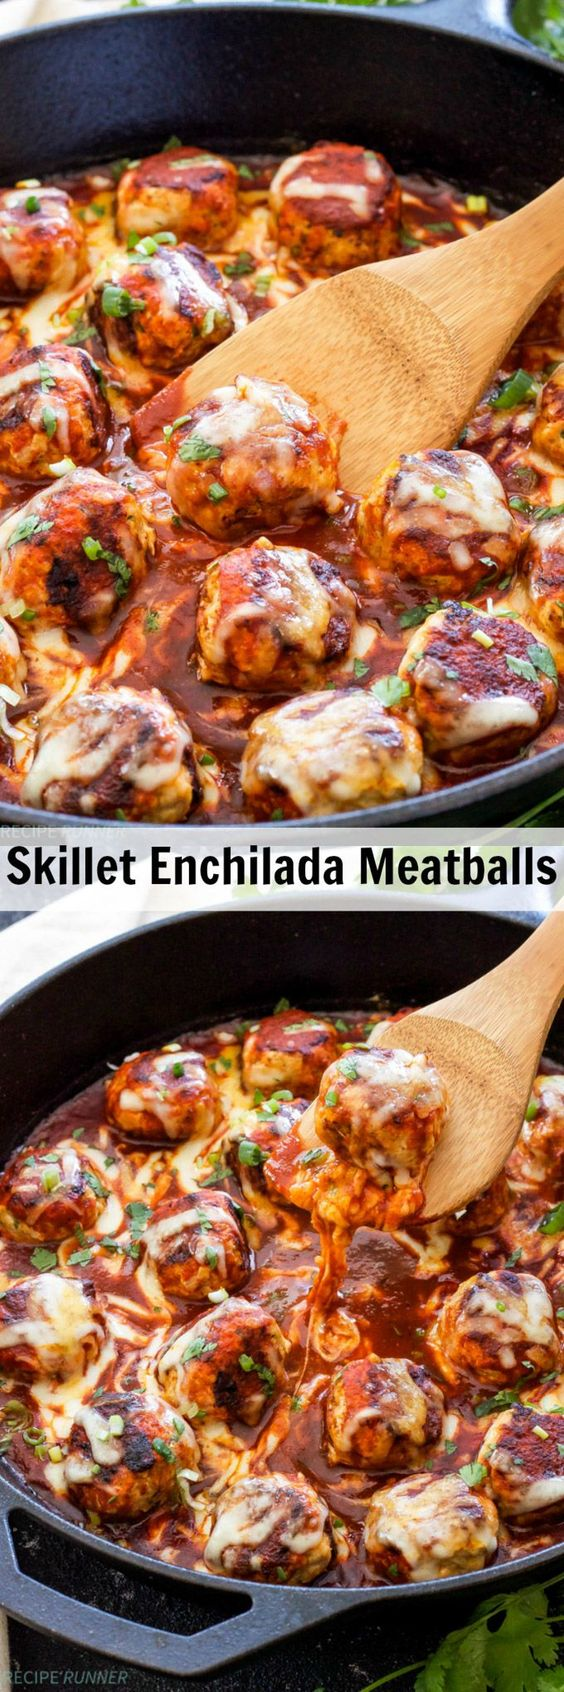 Skillet Enchilada Meatballs | Turkey meatballs seasoned with Mexican ...